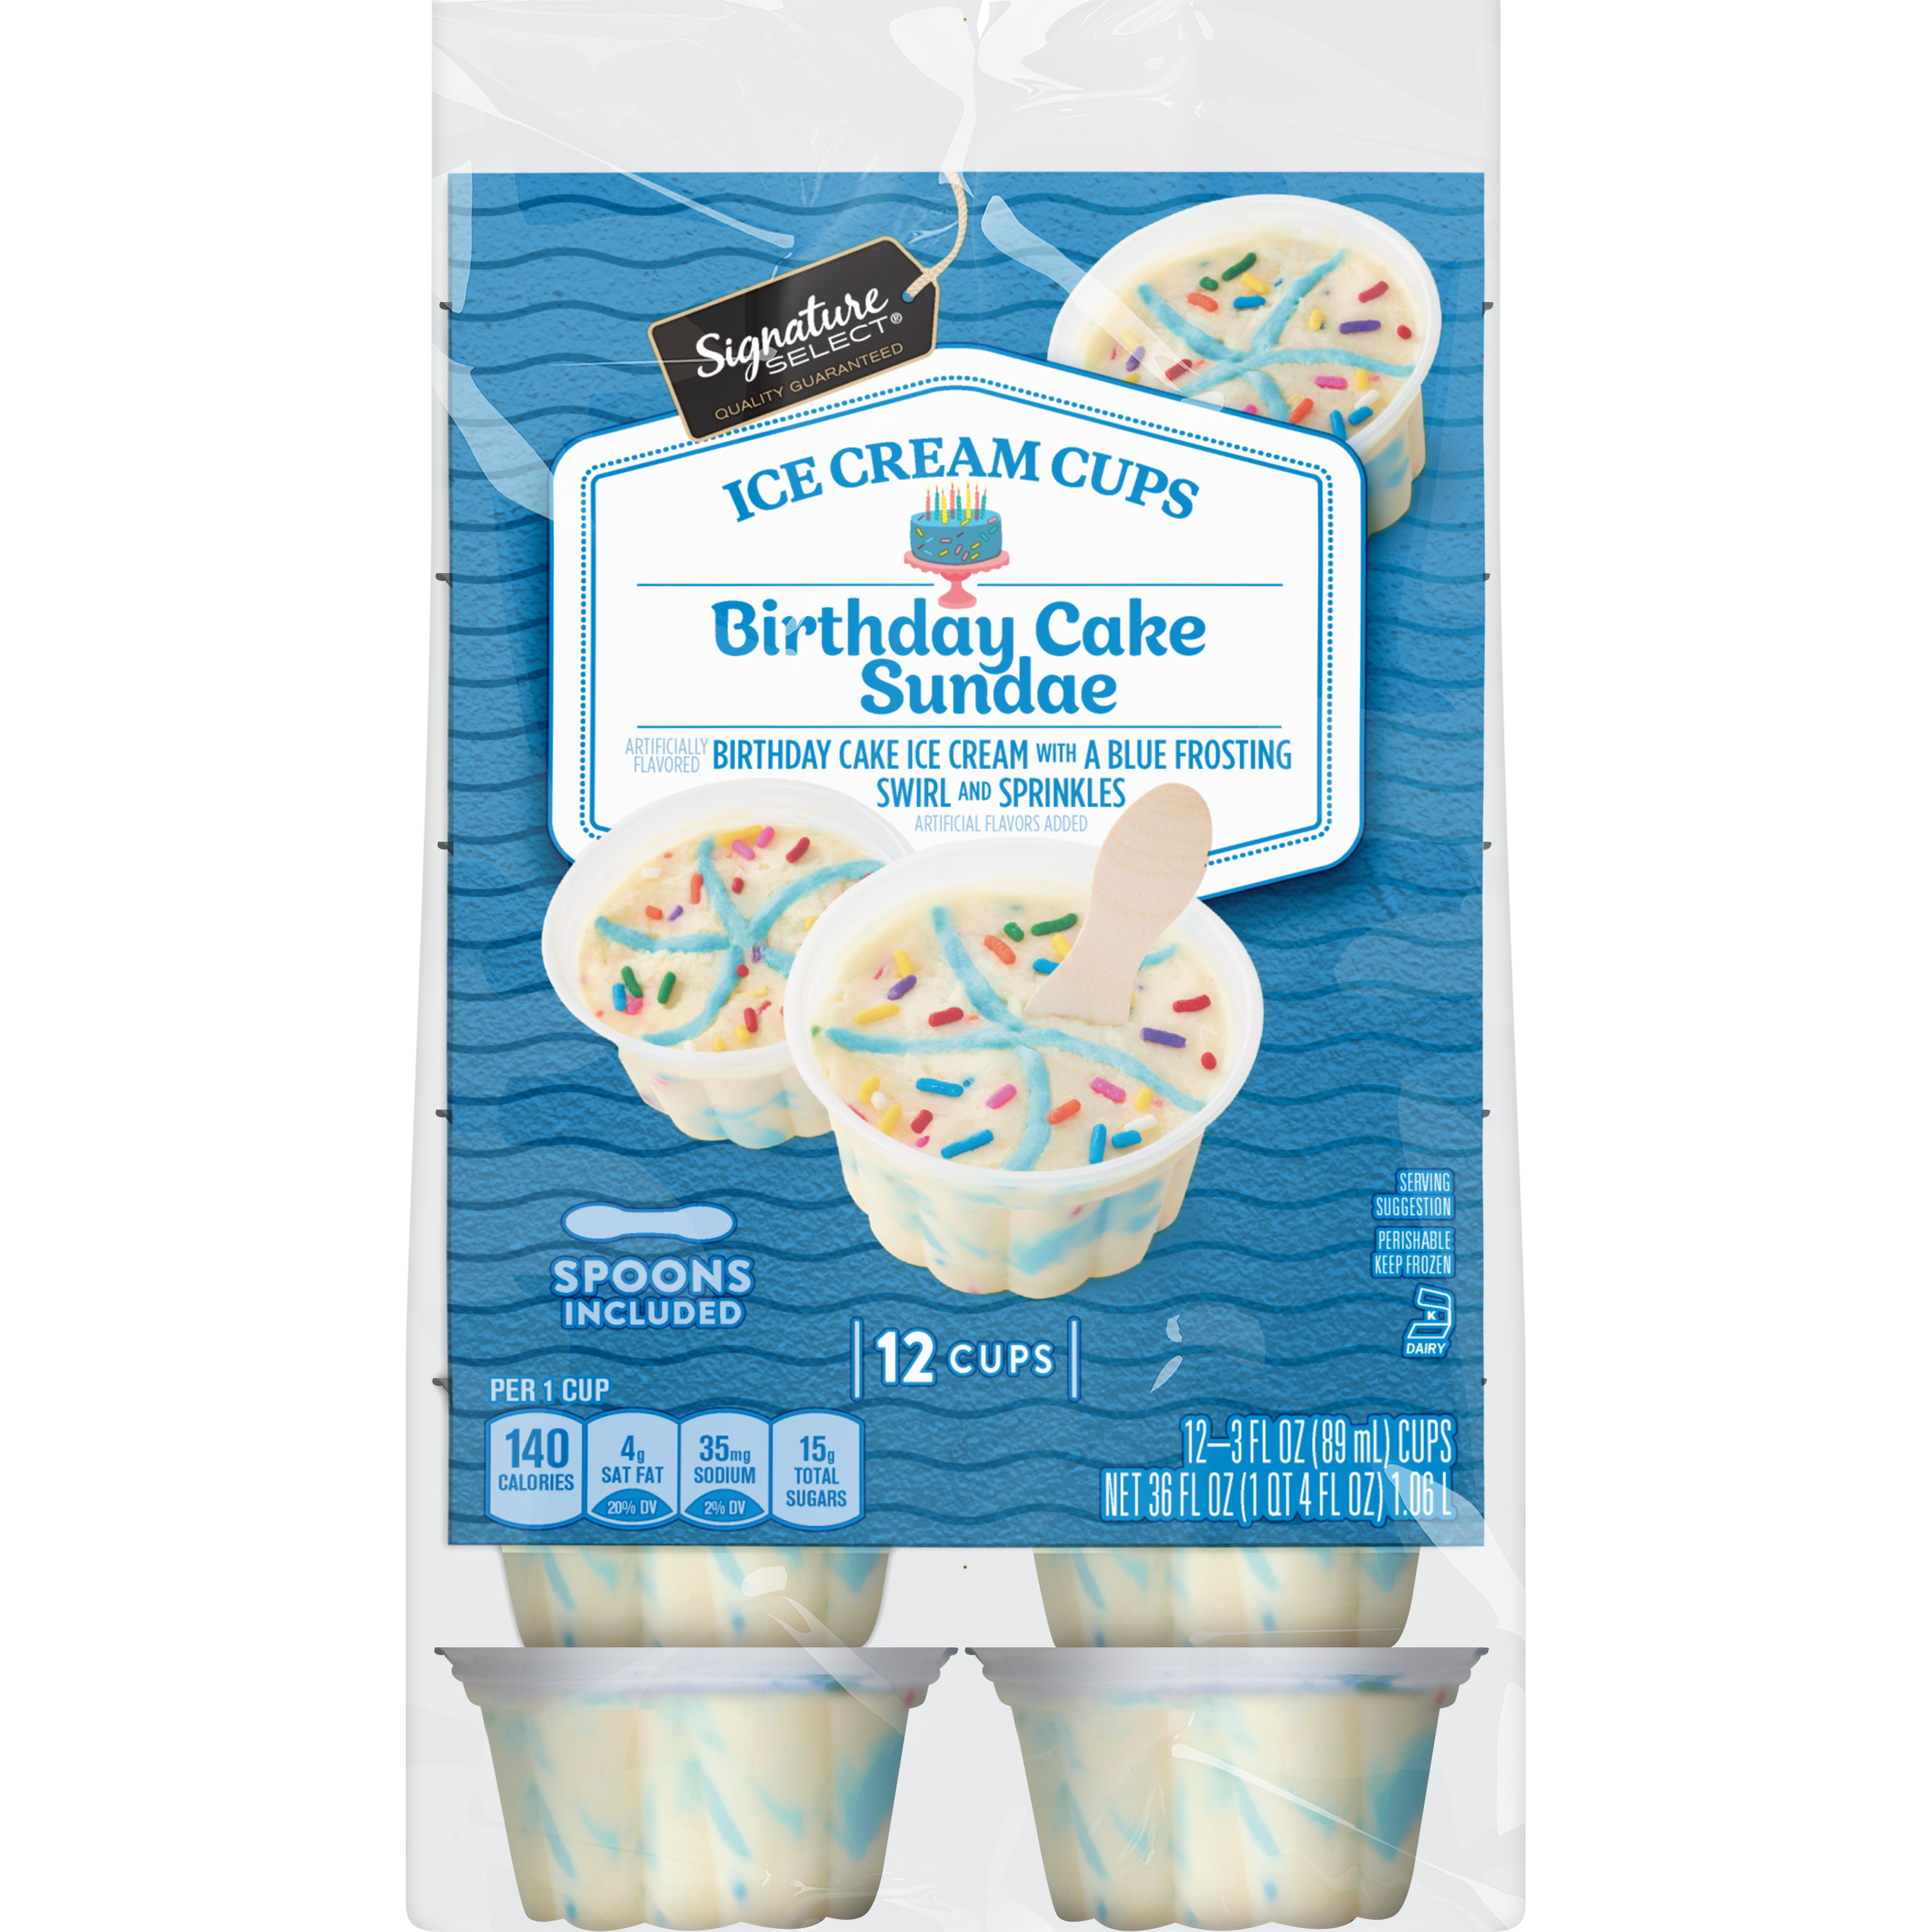 Smartlabel Birthday Cake Sundae Ice Cream With A Blue Frosting Swirl And Sprinkles 021130134267